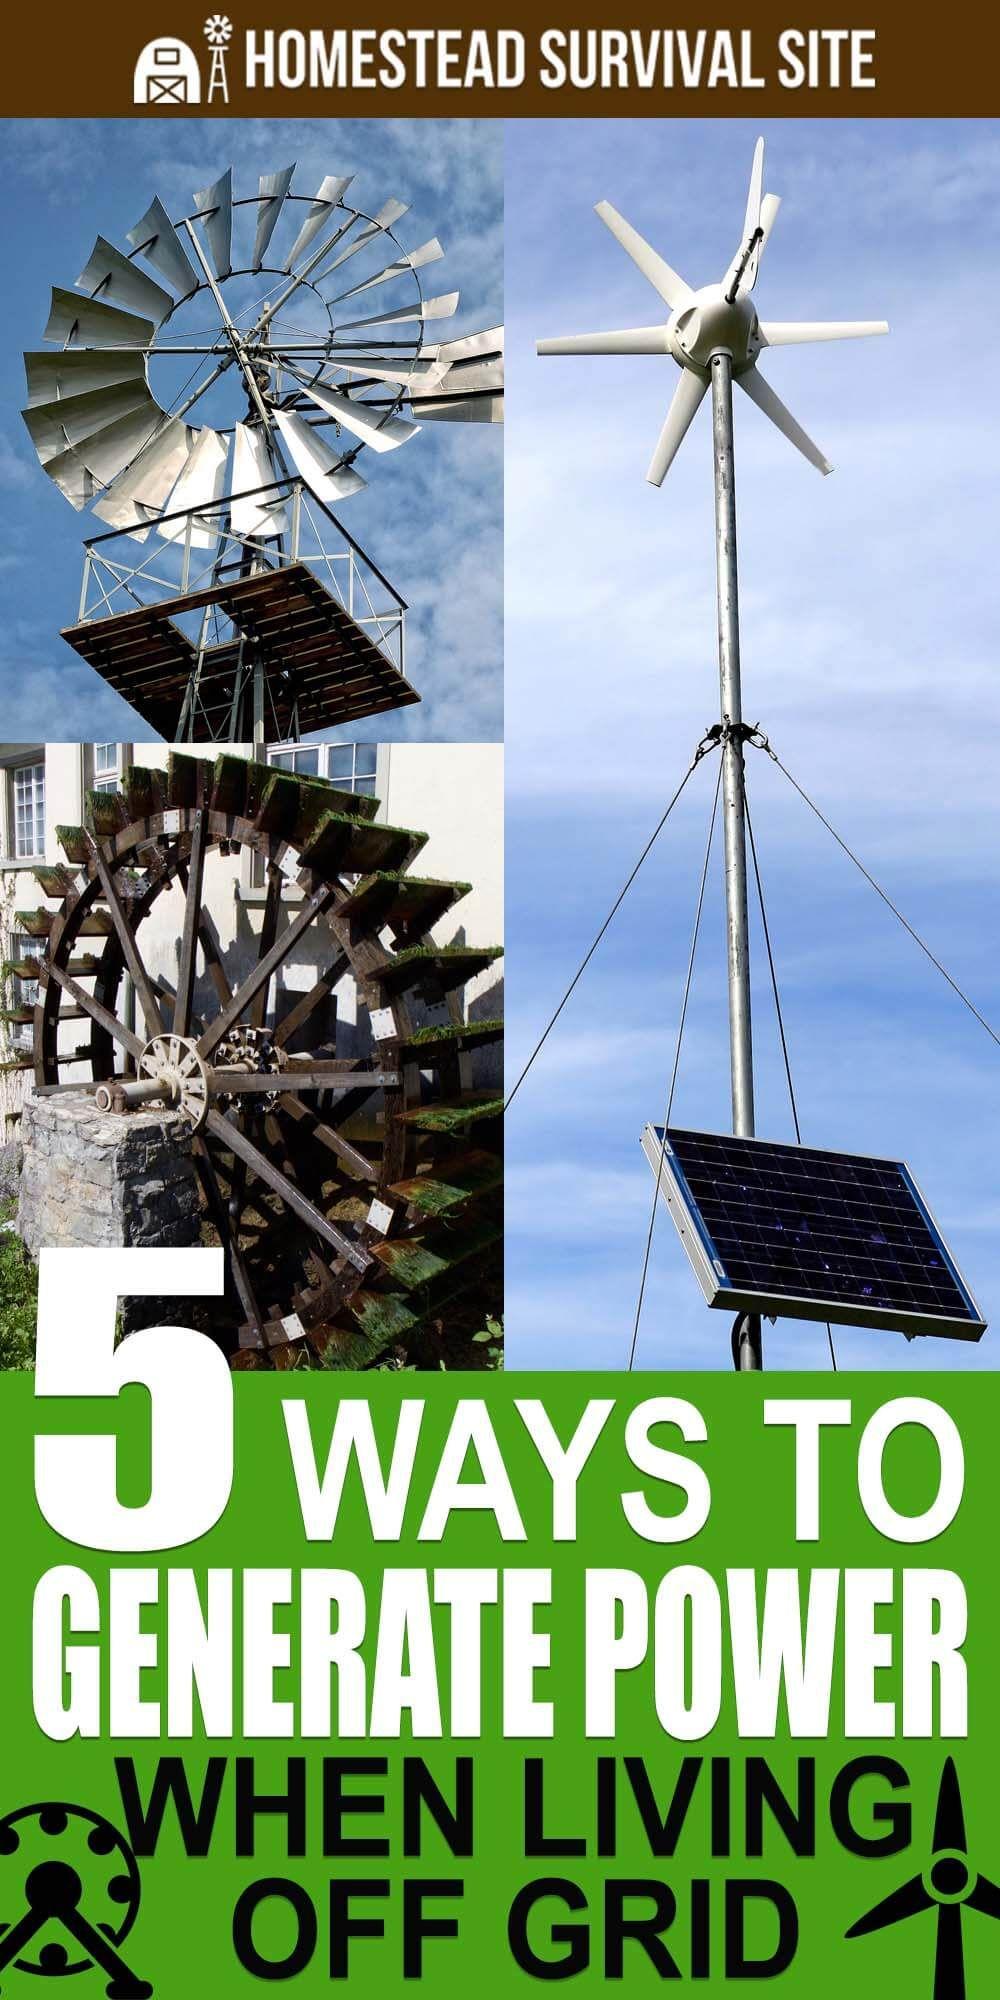 5 Ways To Generate Power When Living Off Grid #alternativeenergy